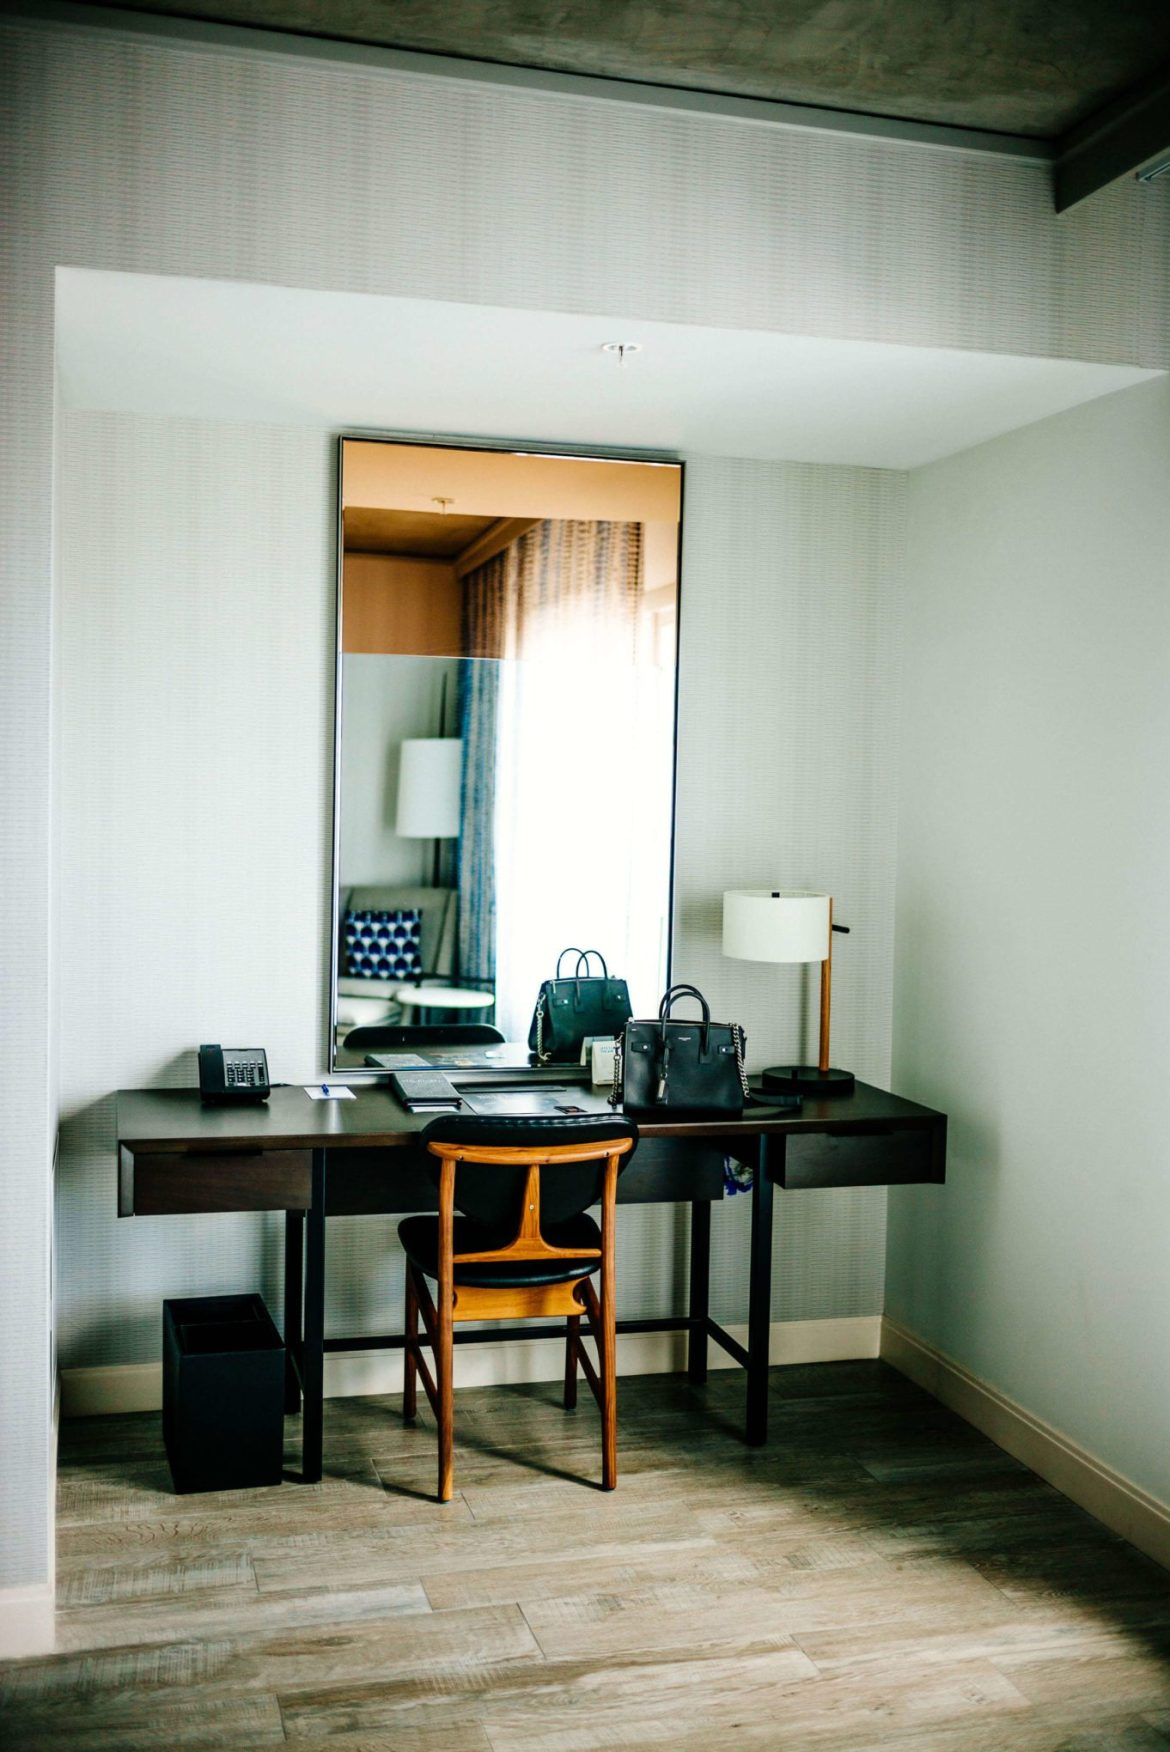 Check out this desk space and decor at the Kimpton Rowan Hotel in Palm Springs is a dessert retreat, The Taste Edit